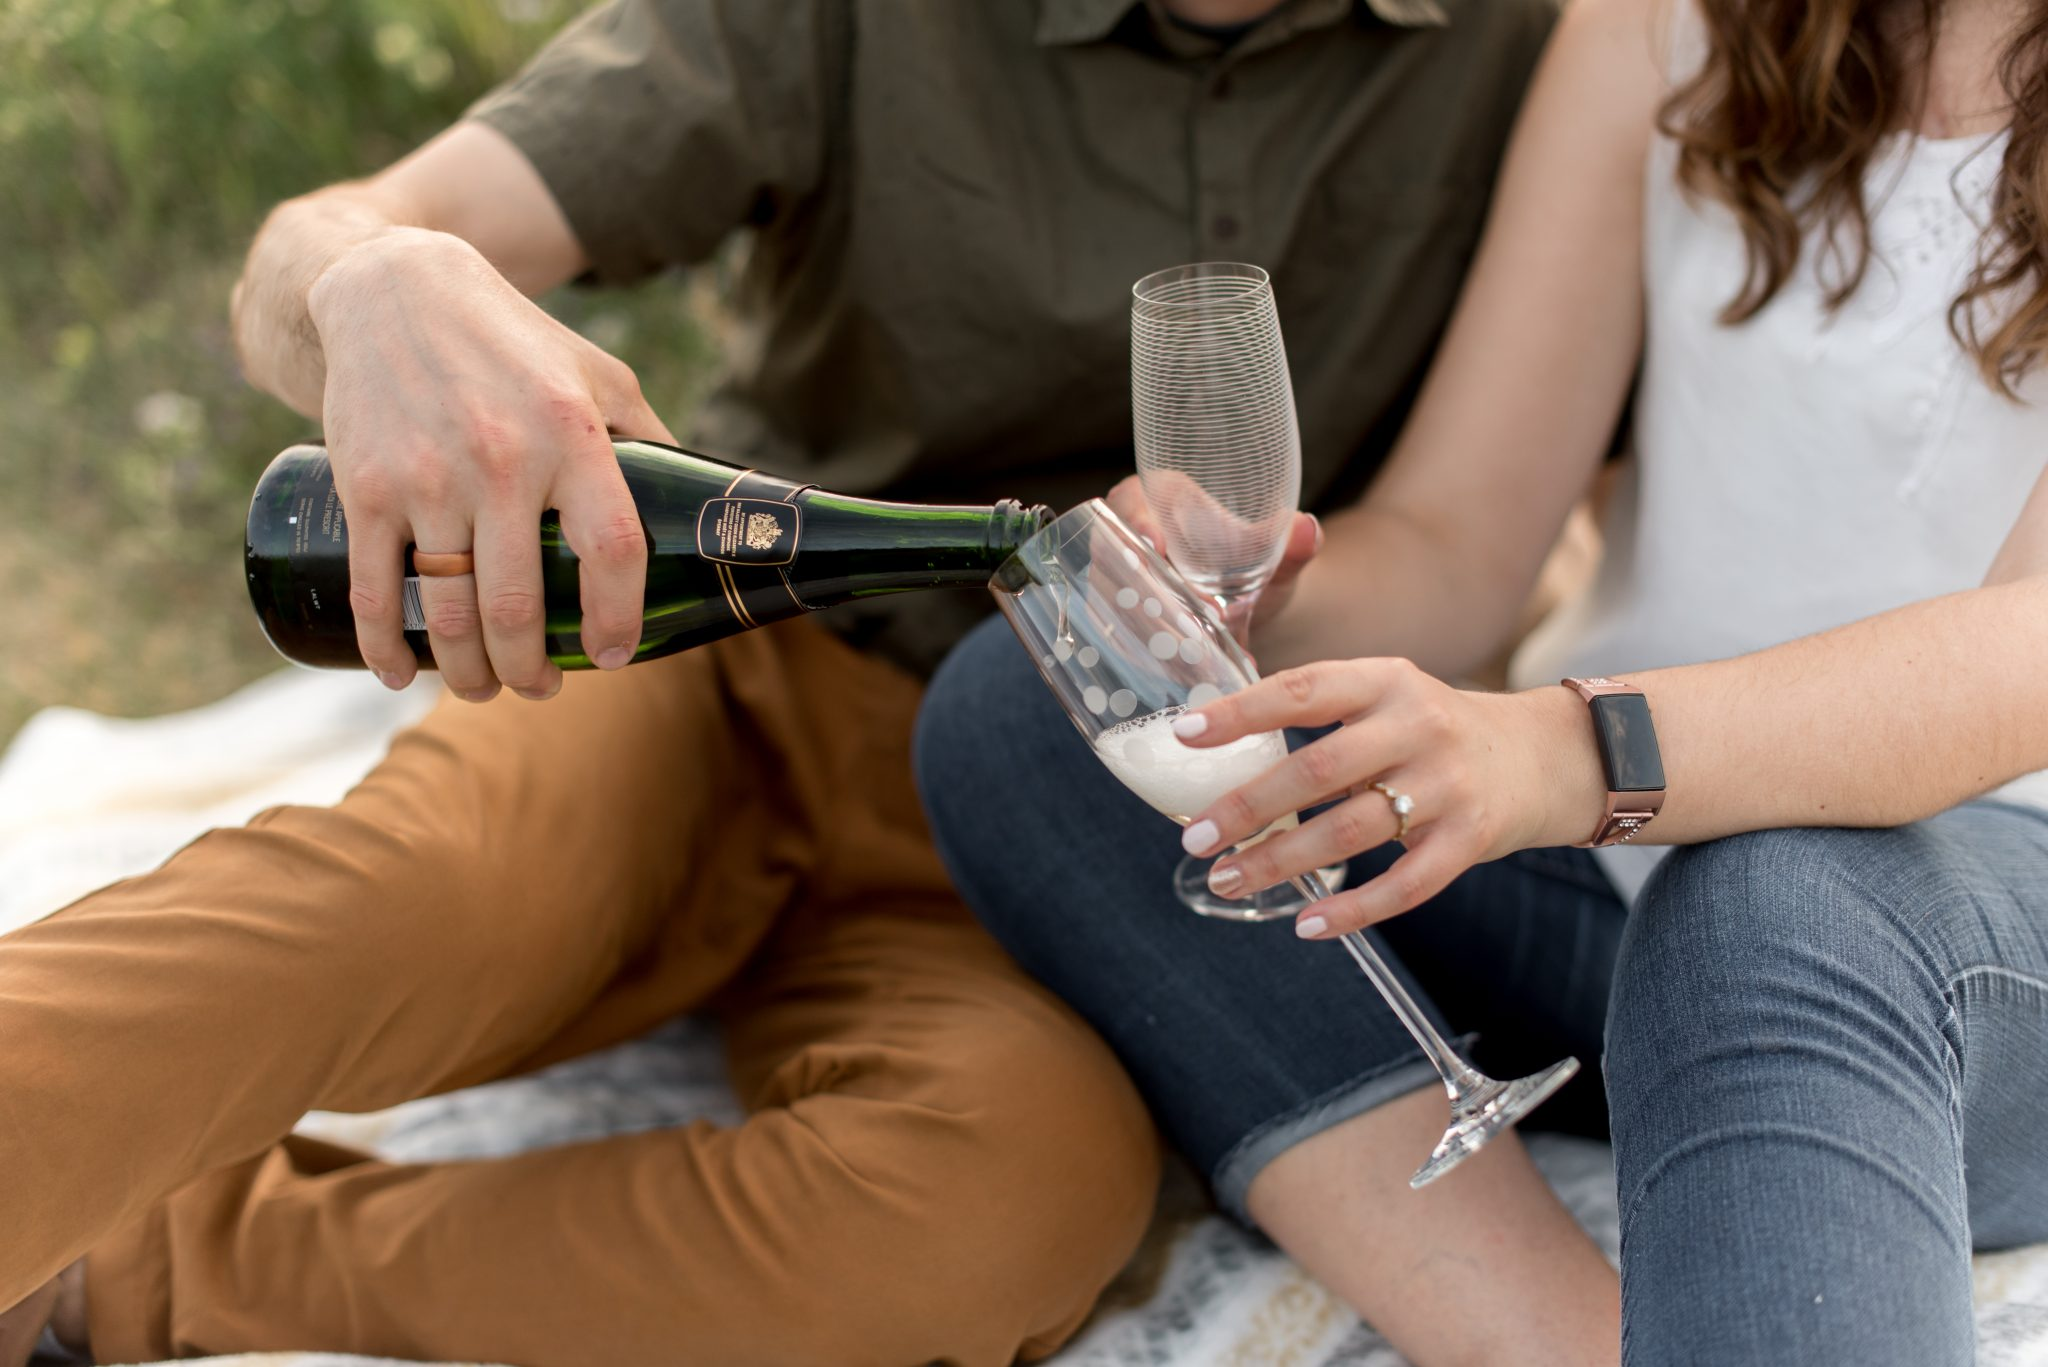 Edmonton Picnic Engagement Session with Champagne